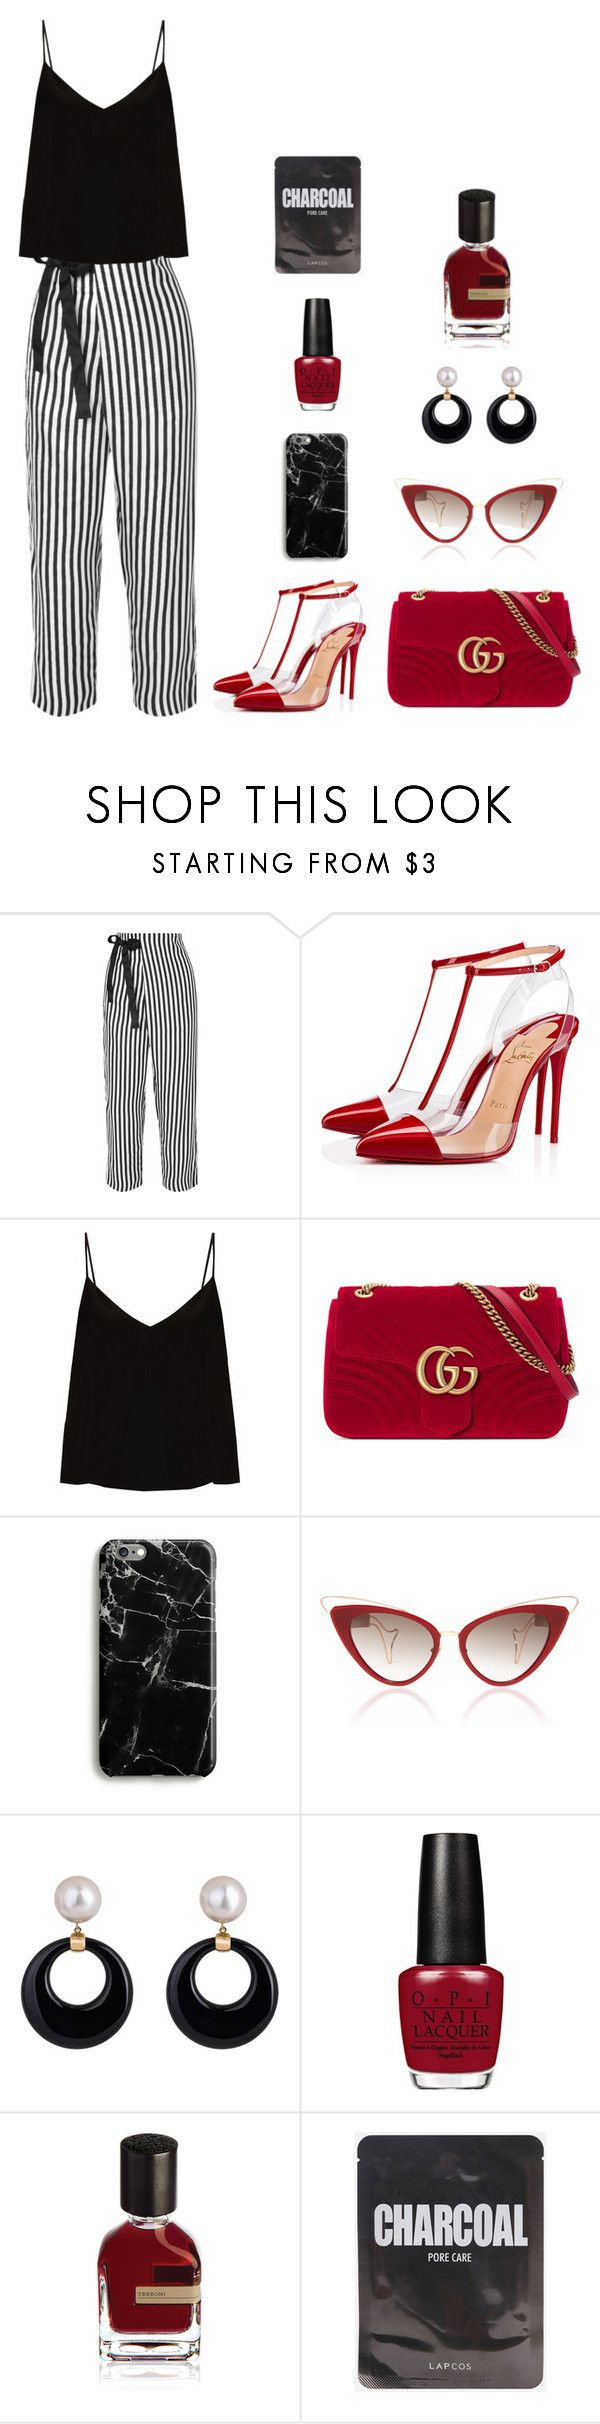 """""""Untitled #458"""" by amandapanda041 ❤ liked on Polyvore featuring J.Crew, Christian Louboutin, Raey, Gucci, Samsung and Orto Parisi"""